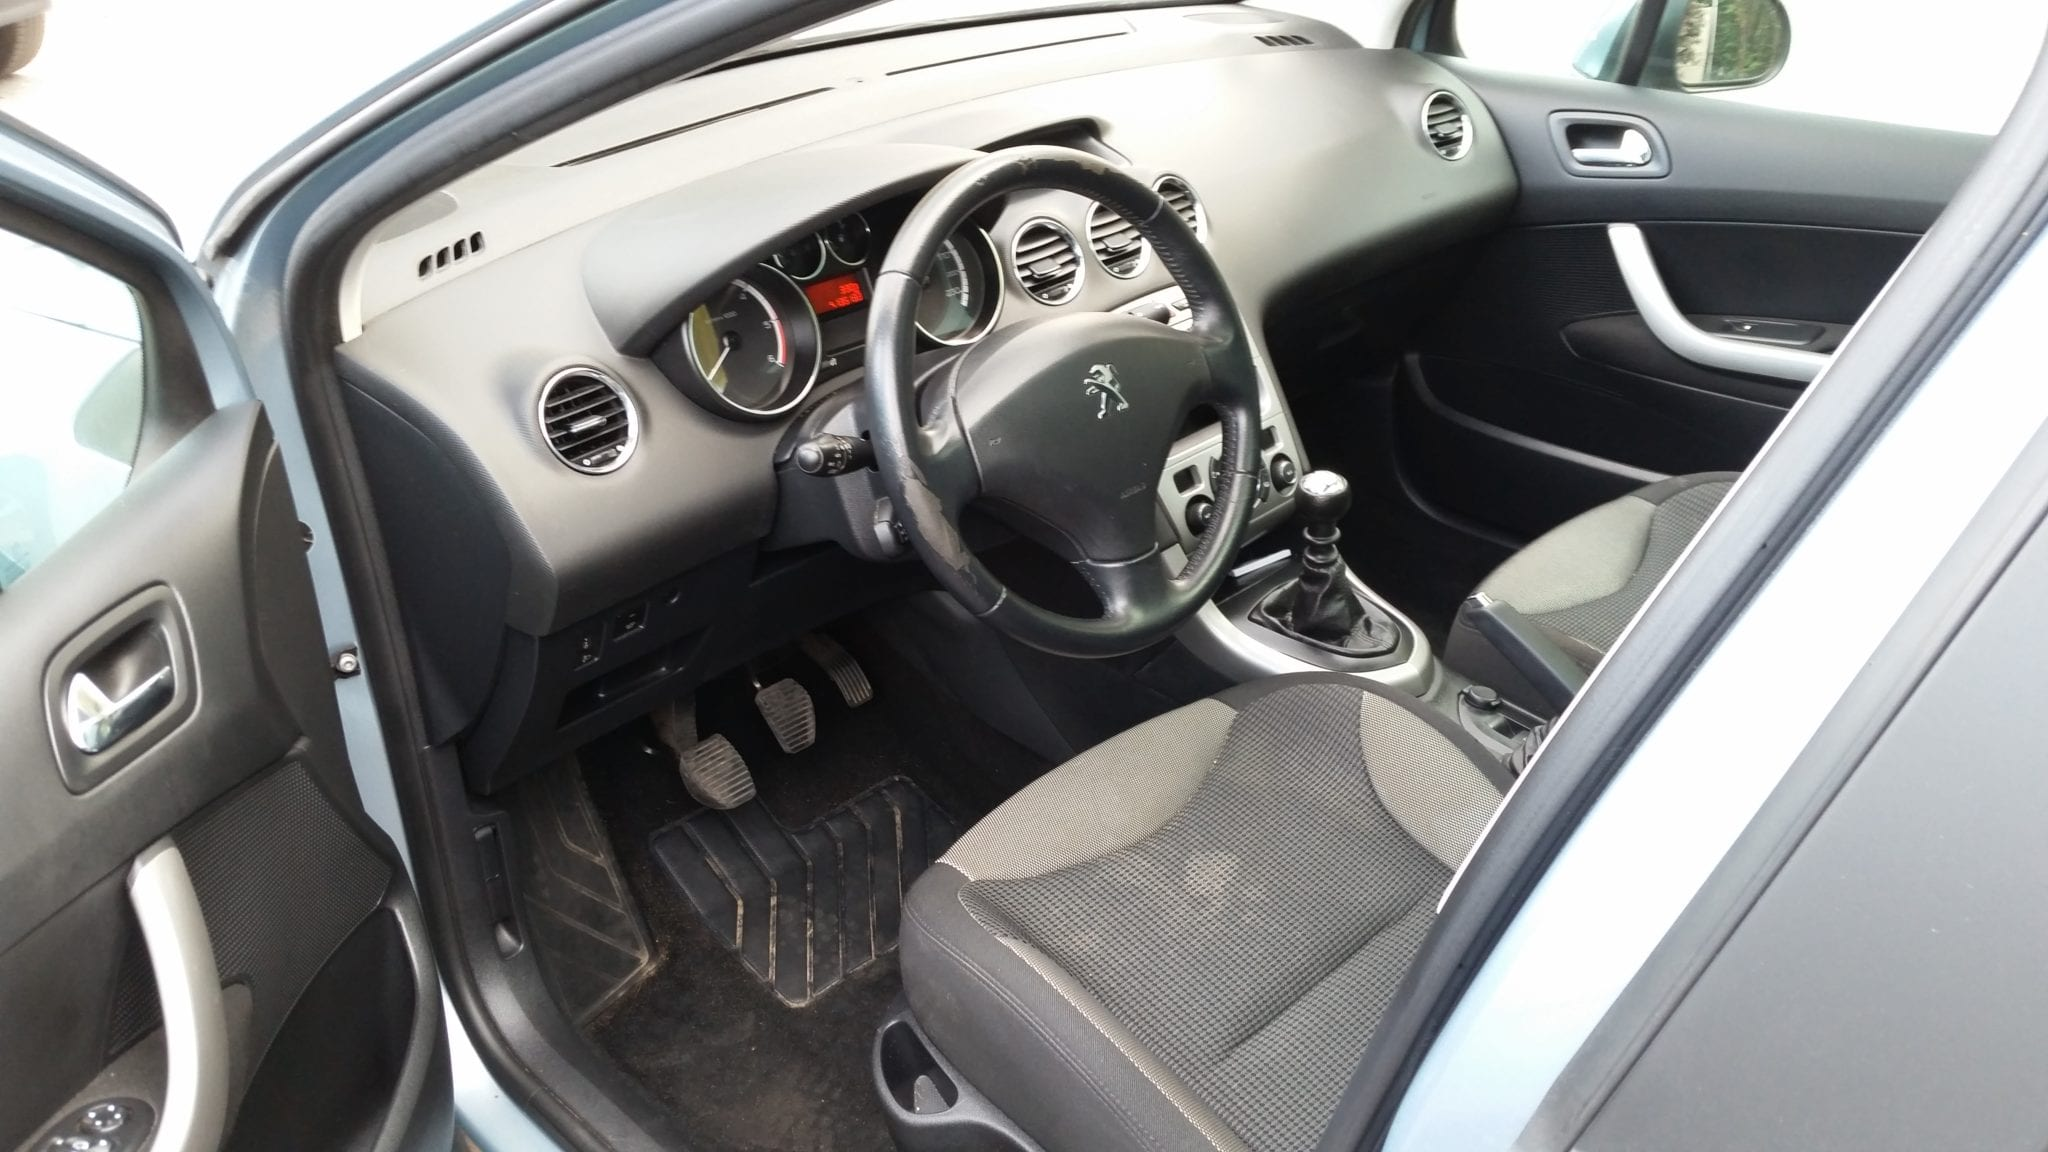 Peugeot 308 PHASE 2 ACTIVE - Image 2